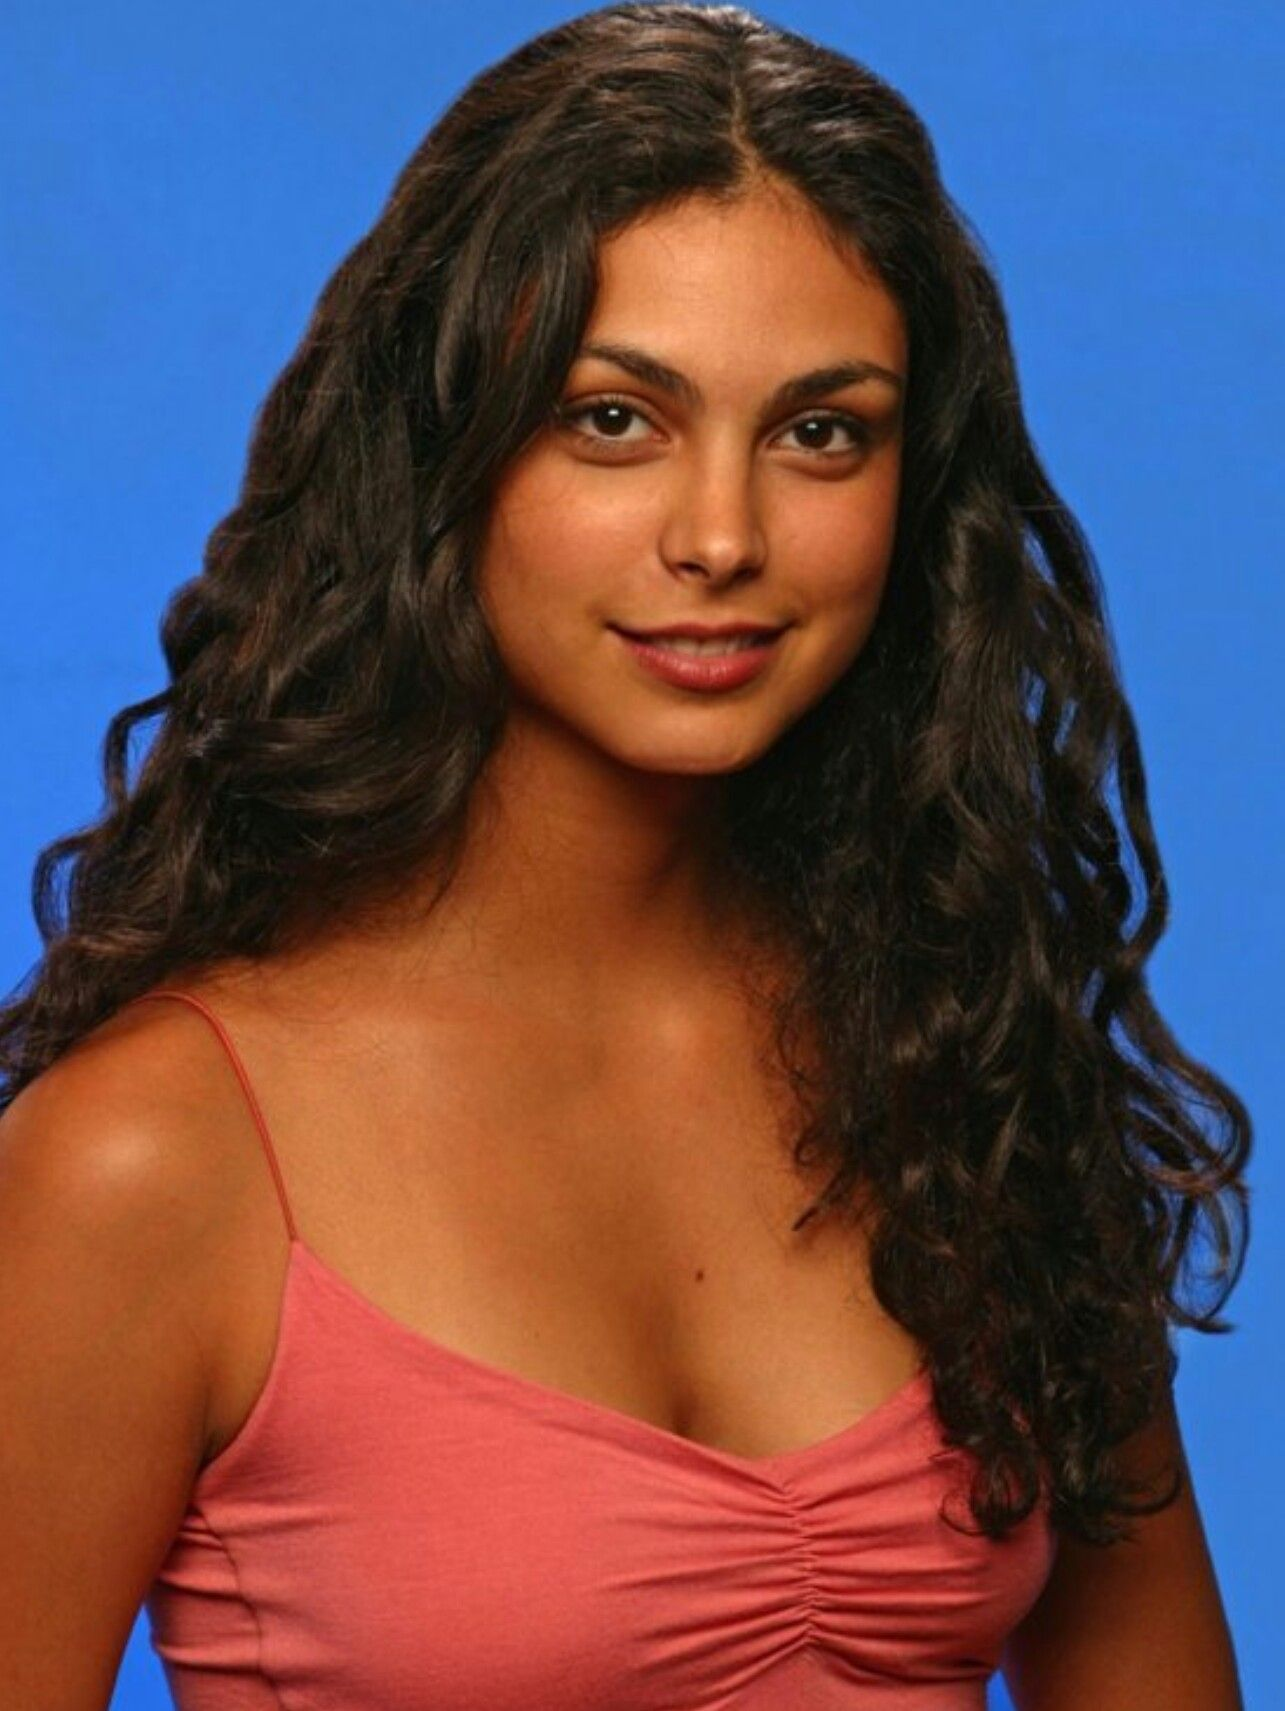 Image result for Morena Baccarin